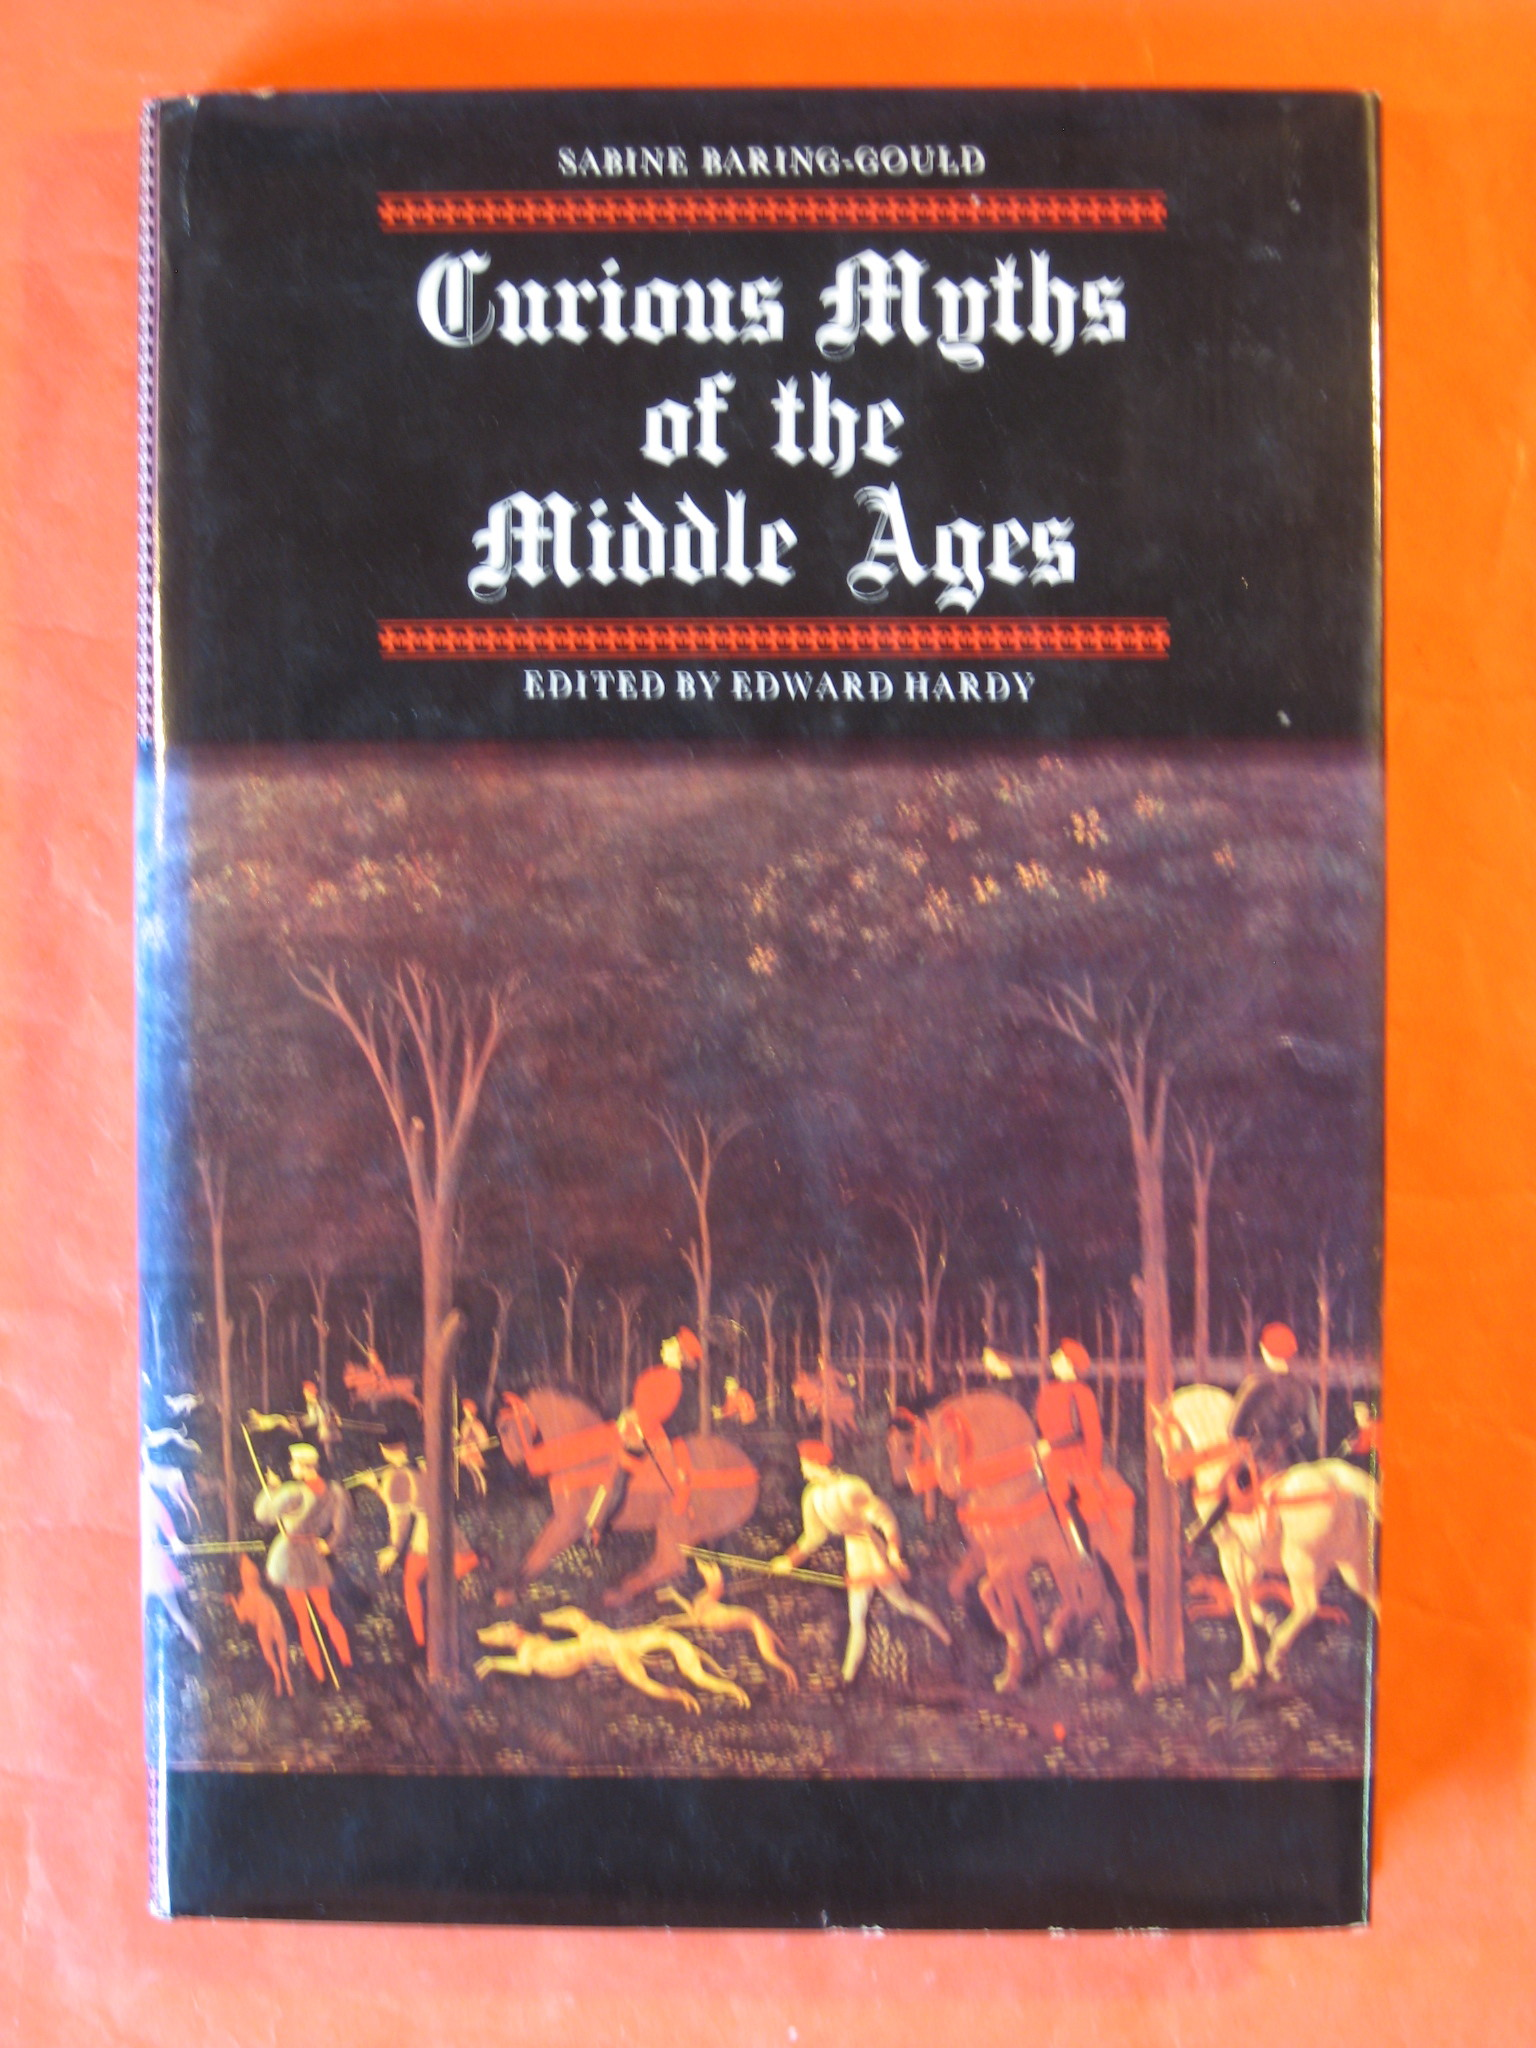 Curious myths of the Middle Ages, Edward Hardy; Sabine Baring-Gould